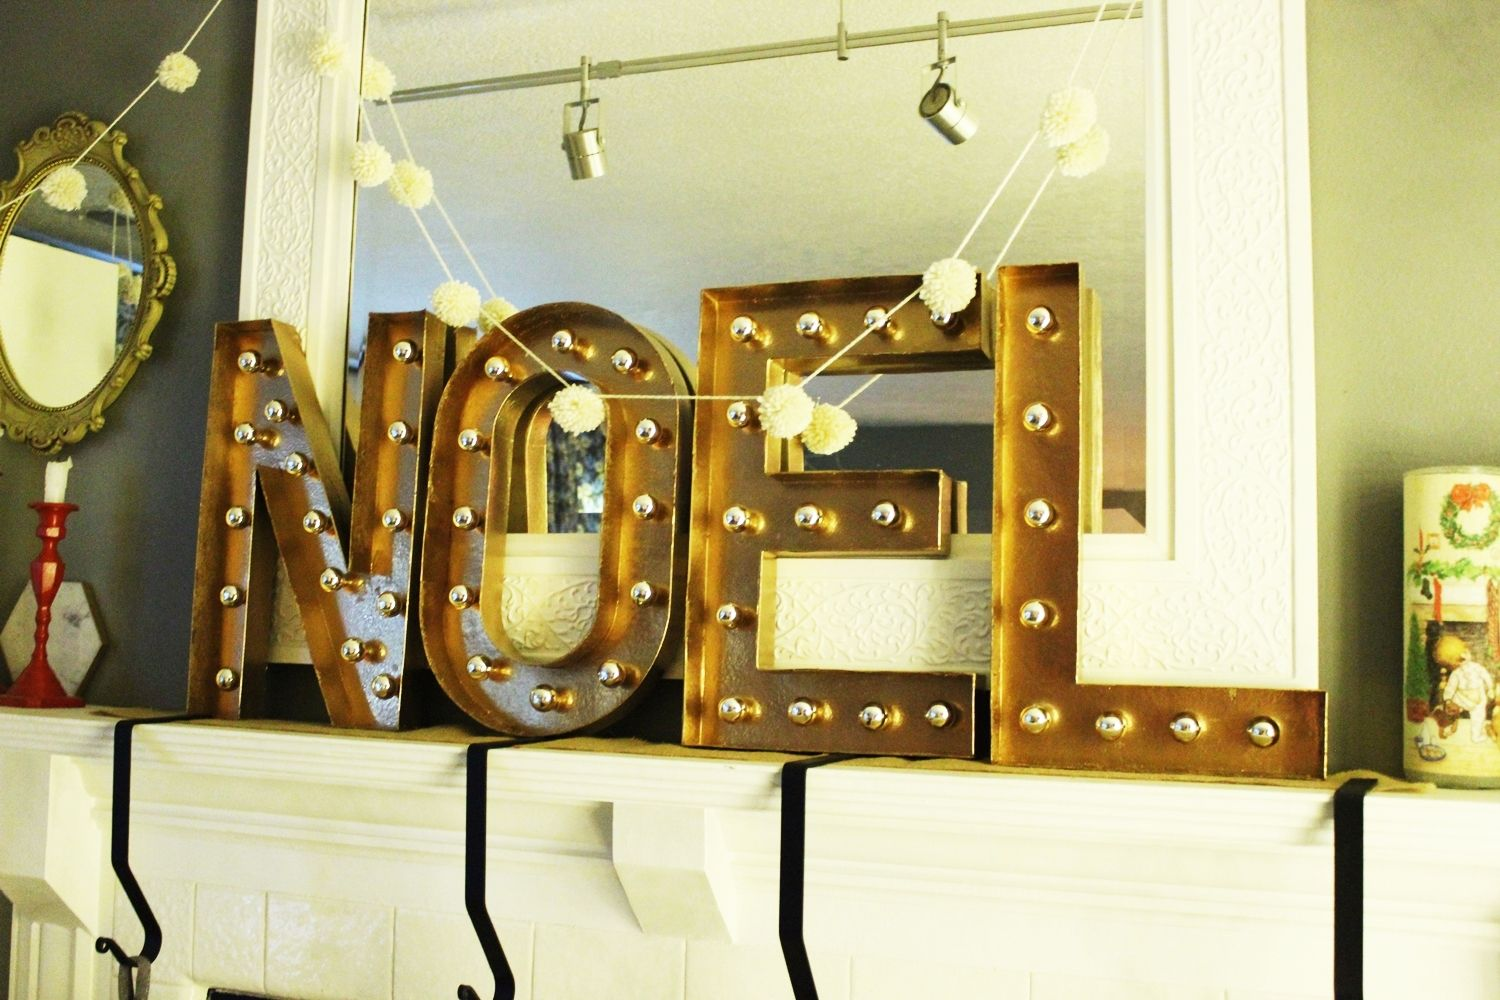 Fireplace mantel with Noel letters